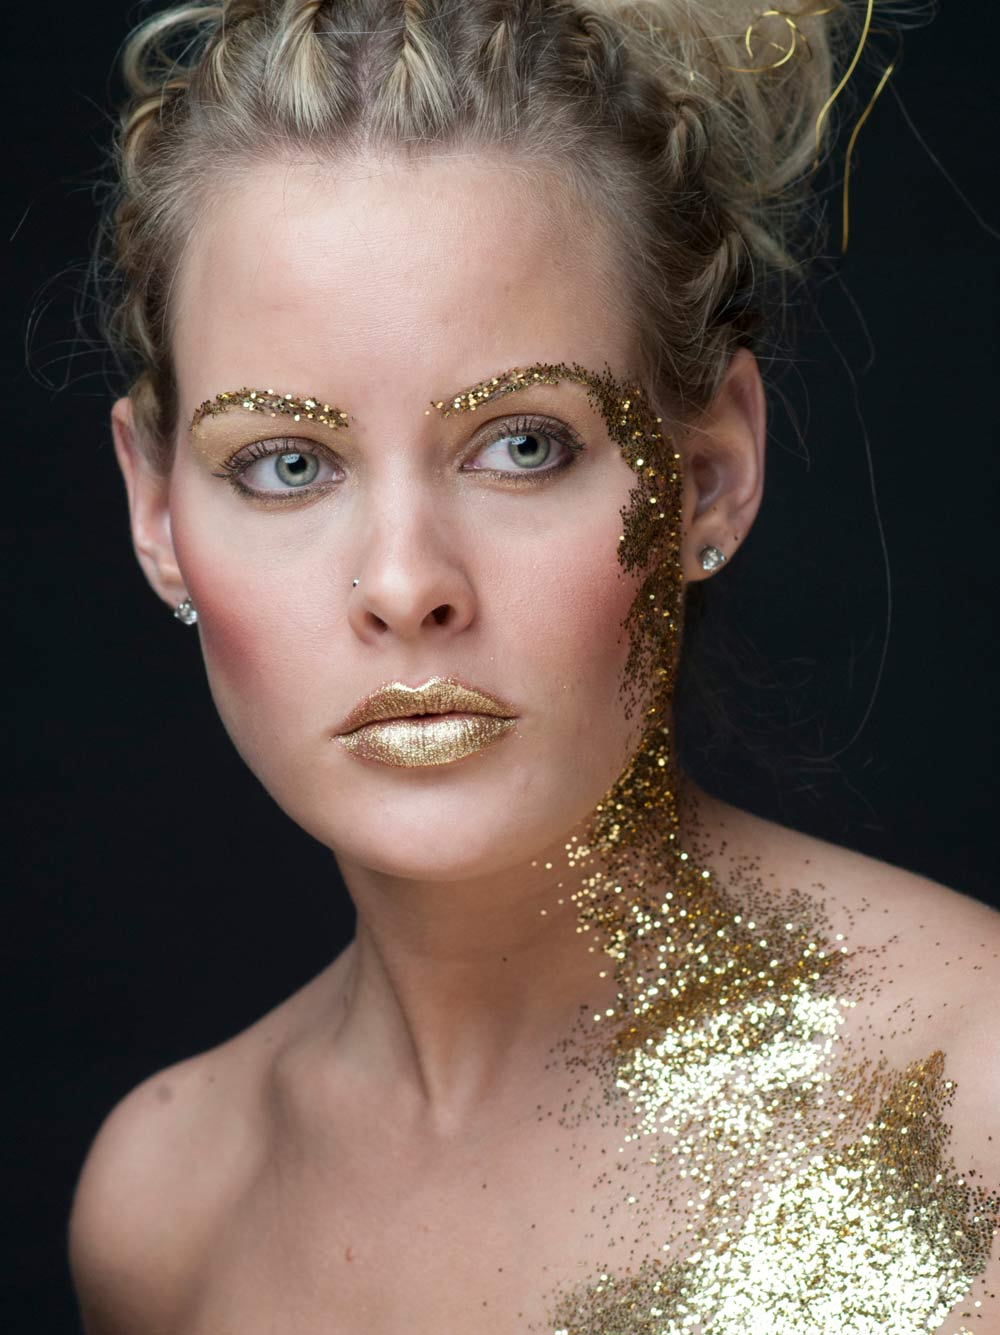 Makeup photo editing Model girl with glitter on face and lips